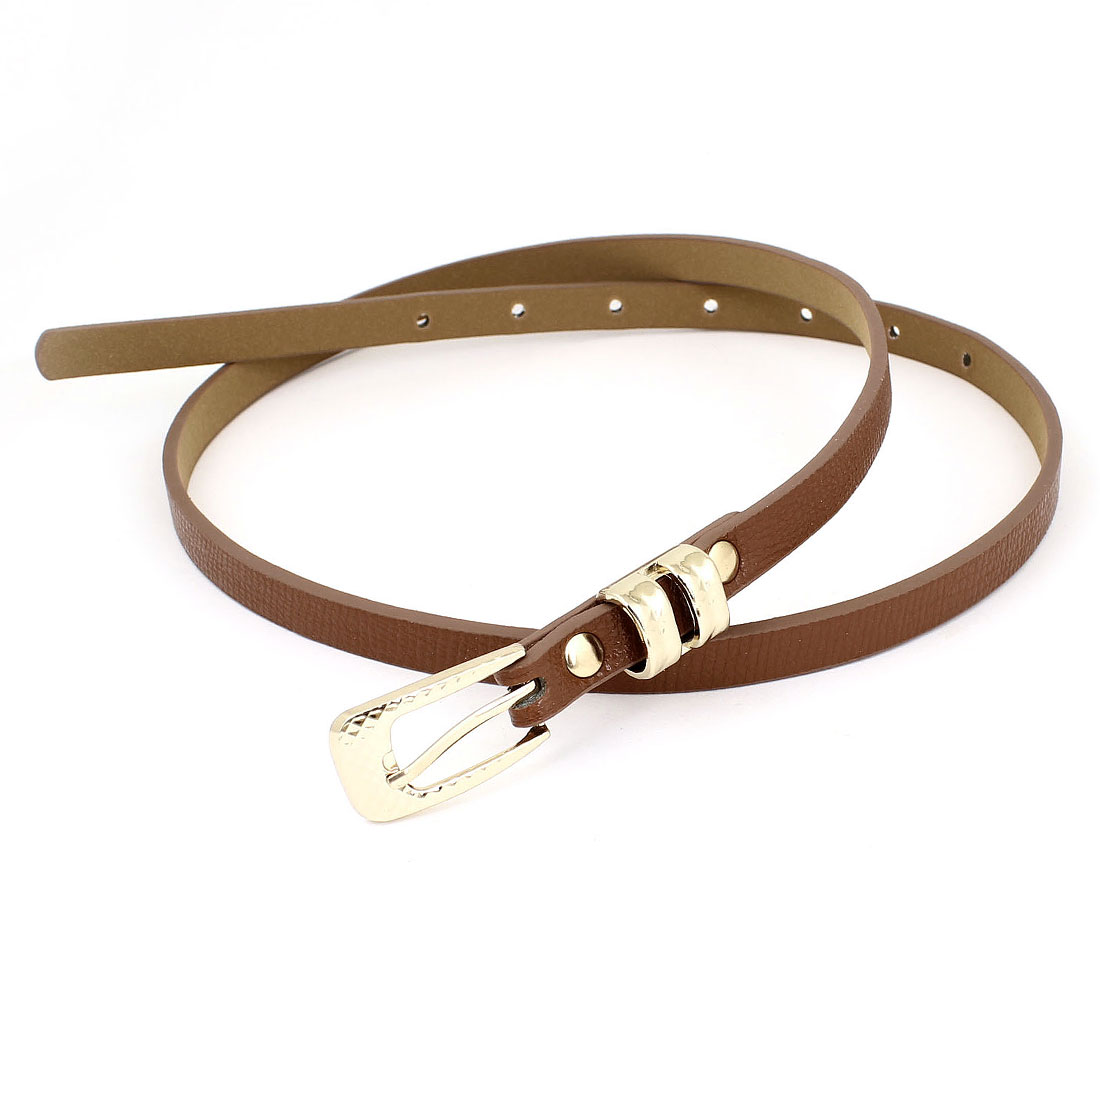 Women Prong Pin Buckle Brown Faux Leather Textured Band 1.2cm Width Waist Belt